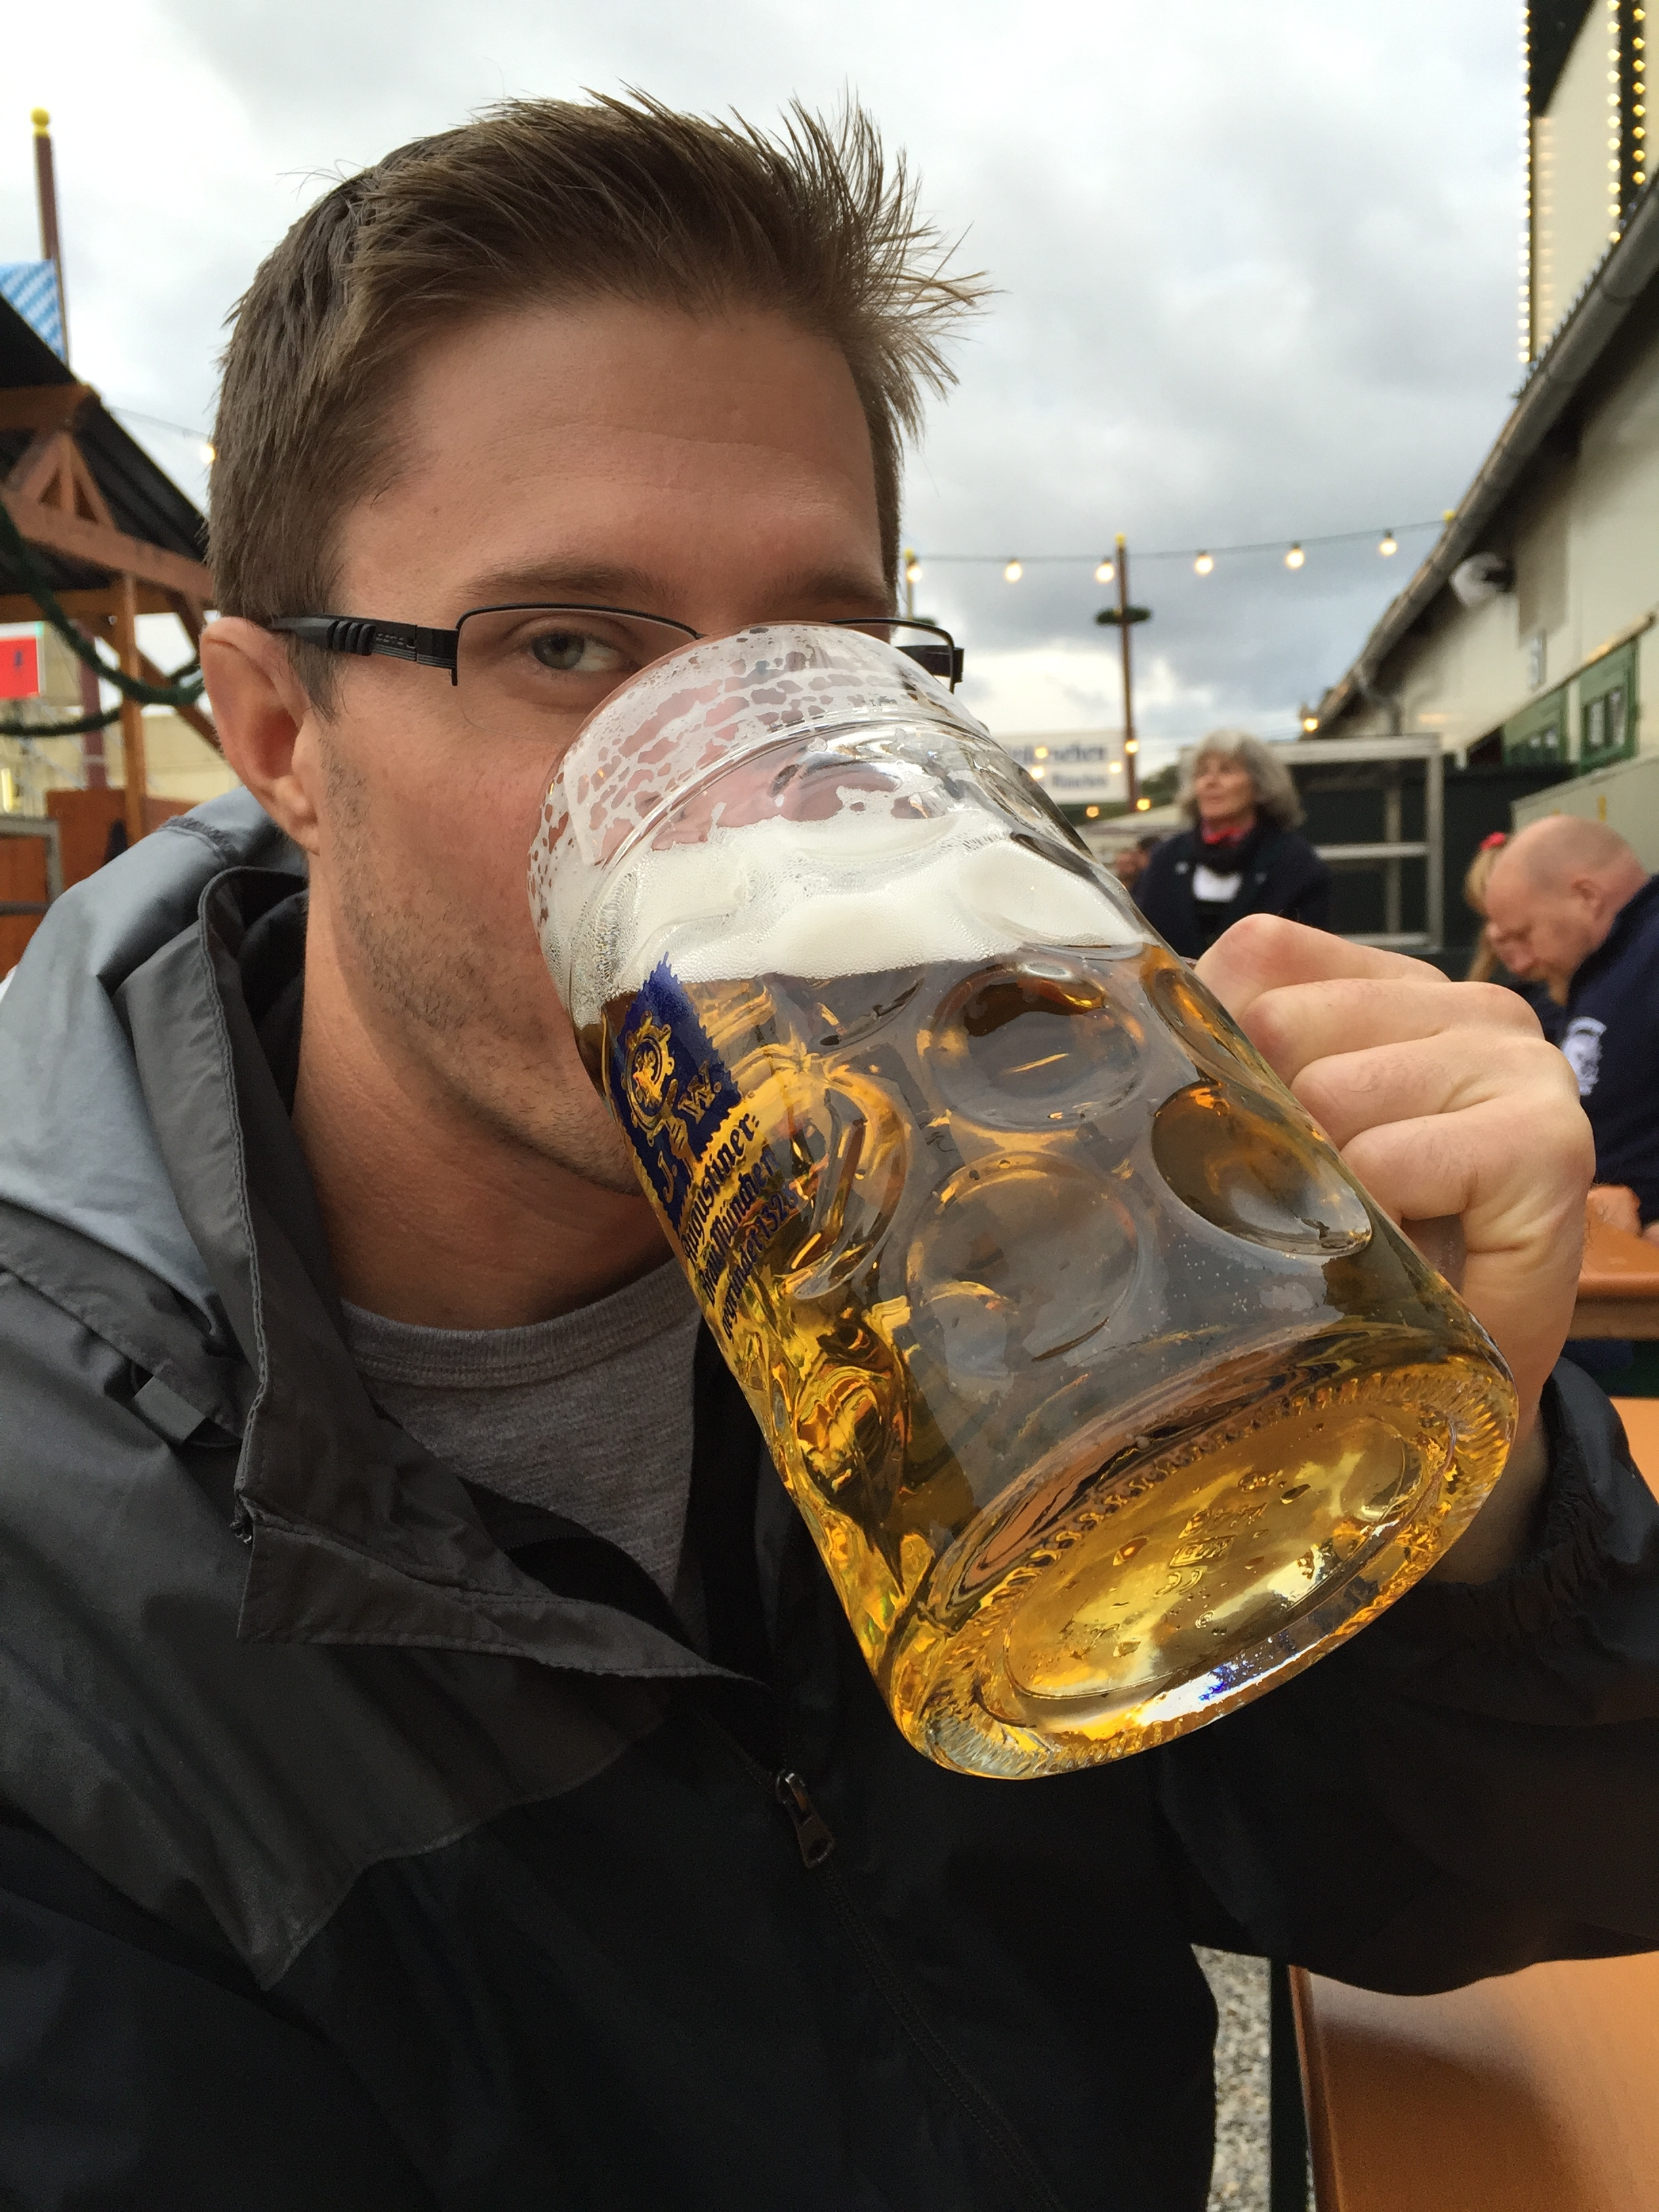 Here I am enjoying an Augustiner Oktoberfest at one of their biergartens.